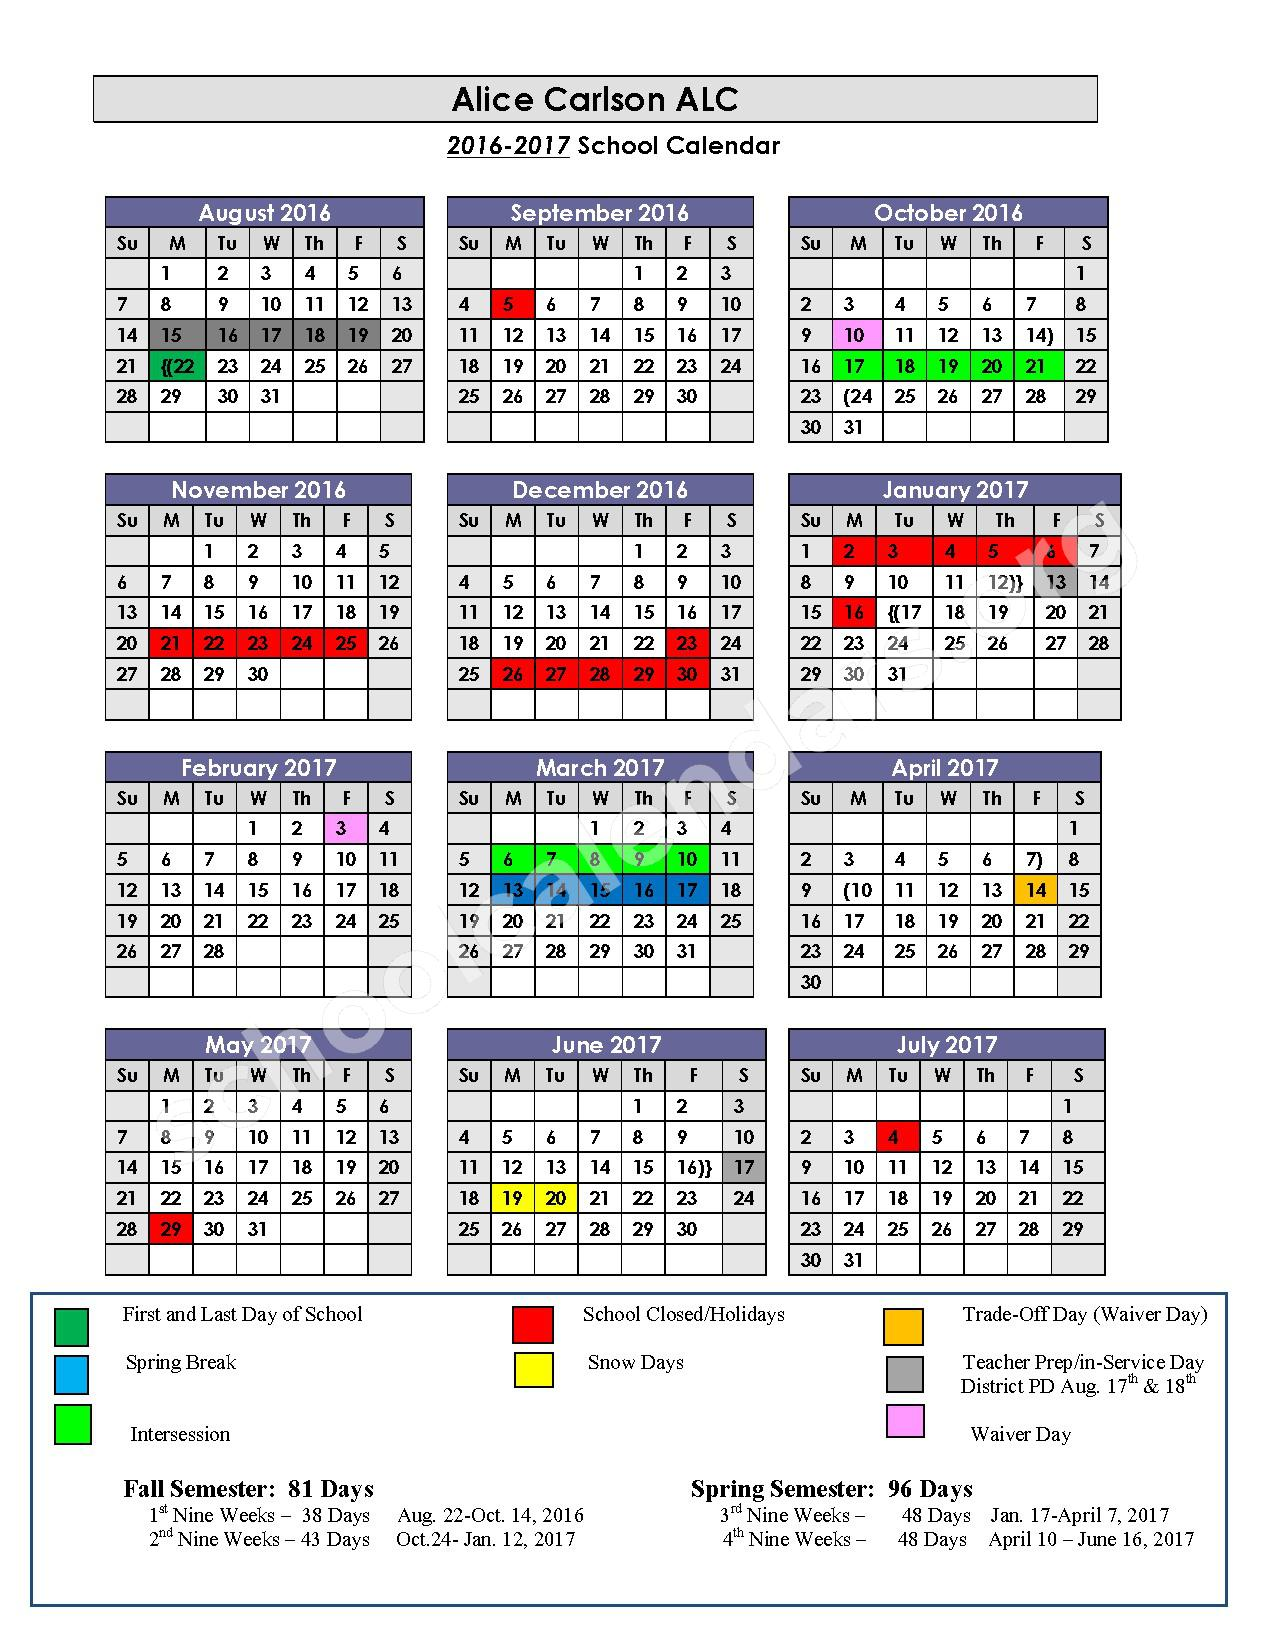 2016 - 2017 & 2017 - 2018 Alice Carlson Applied Learning Center Calendars – Alice Carlson Applied Learning Center – page 1